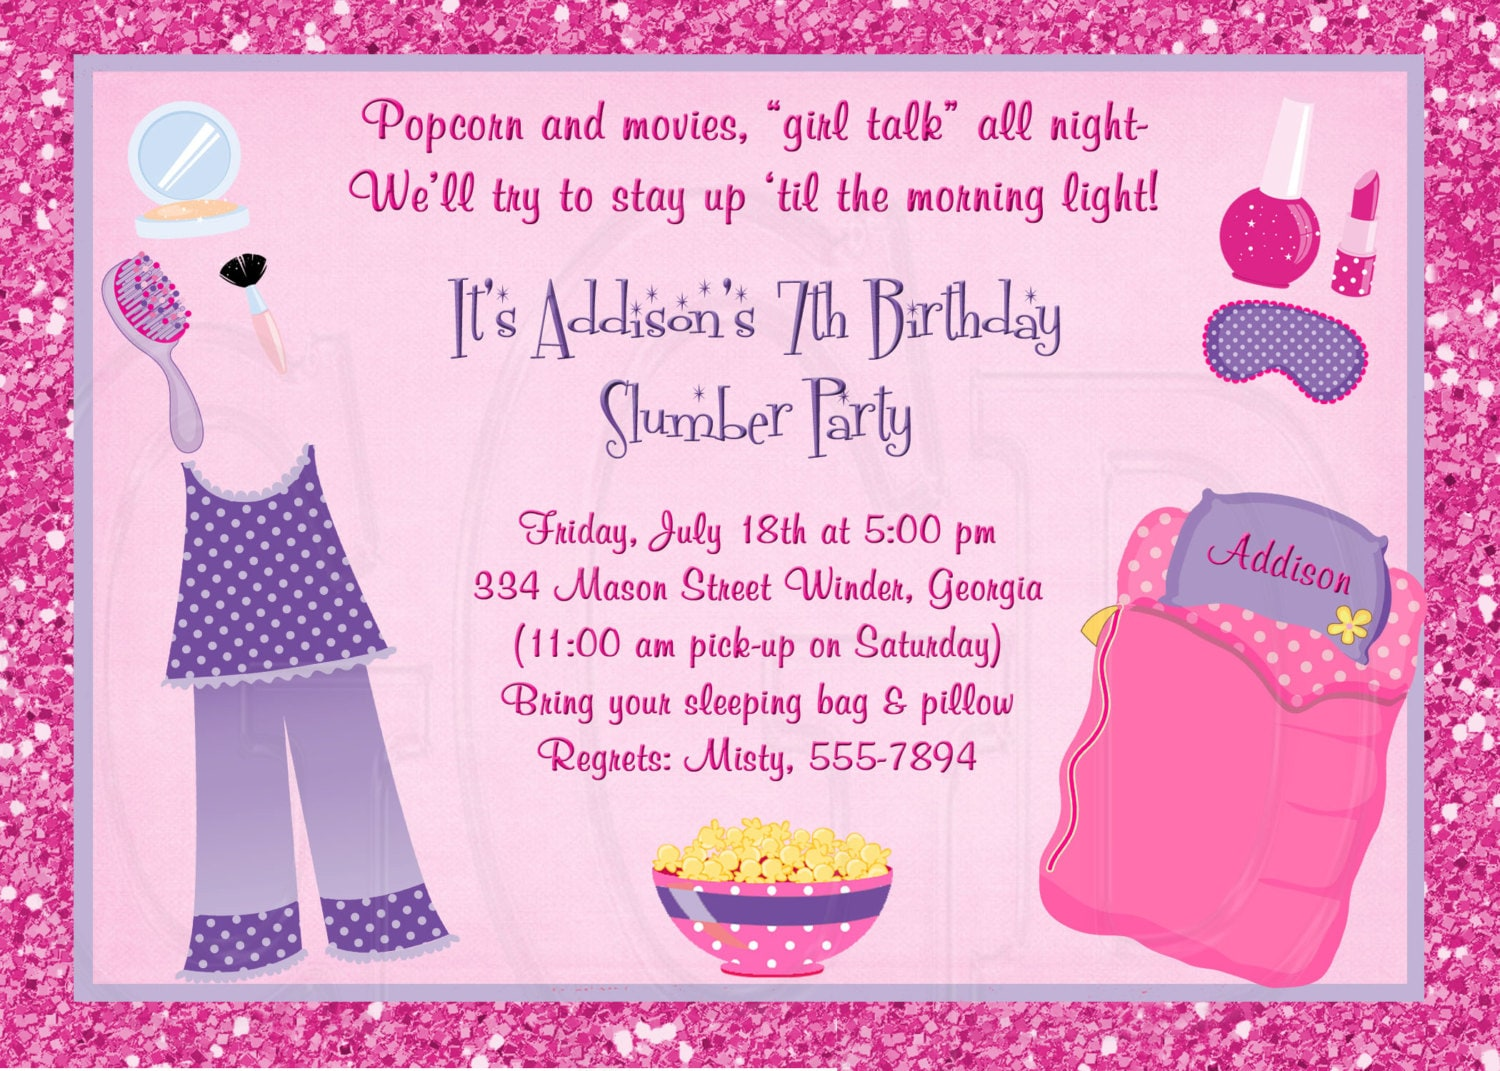 Slumber Party Invitation Pajama Party Digital File – Pajama Party Invites